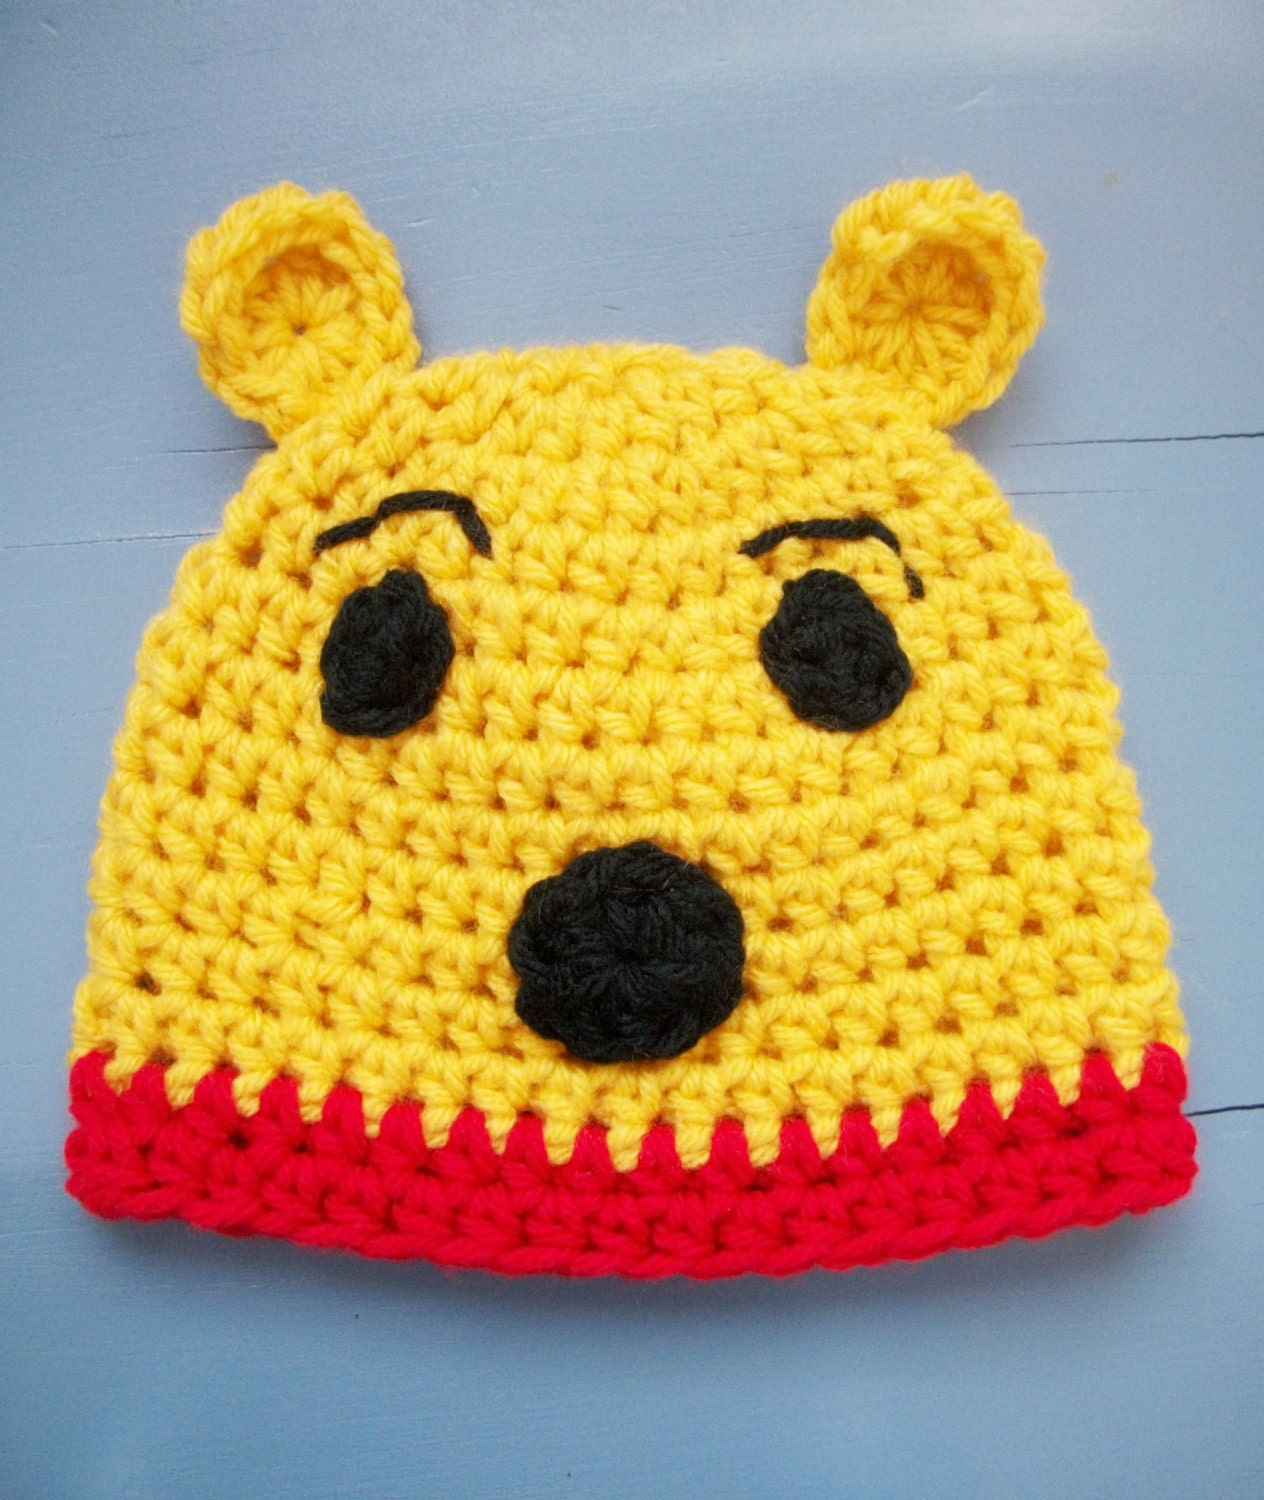 Crochet Pooh Bear Hat Pattern : Items similar to Winnie the Pooh Hat, Yellow Crochet Bear ...